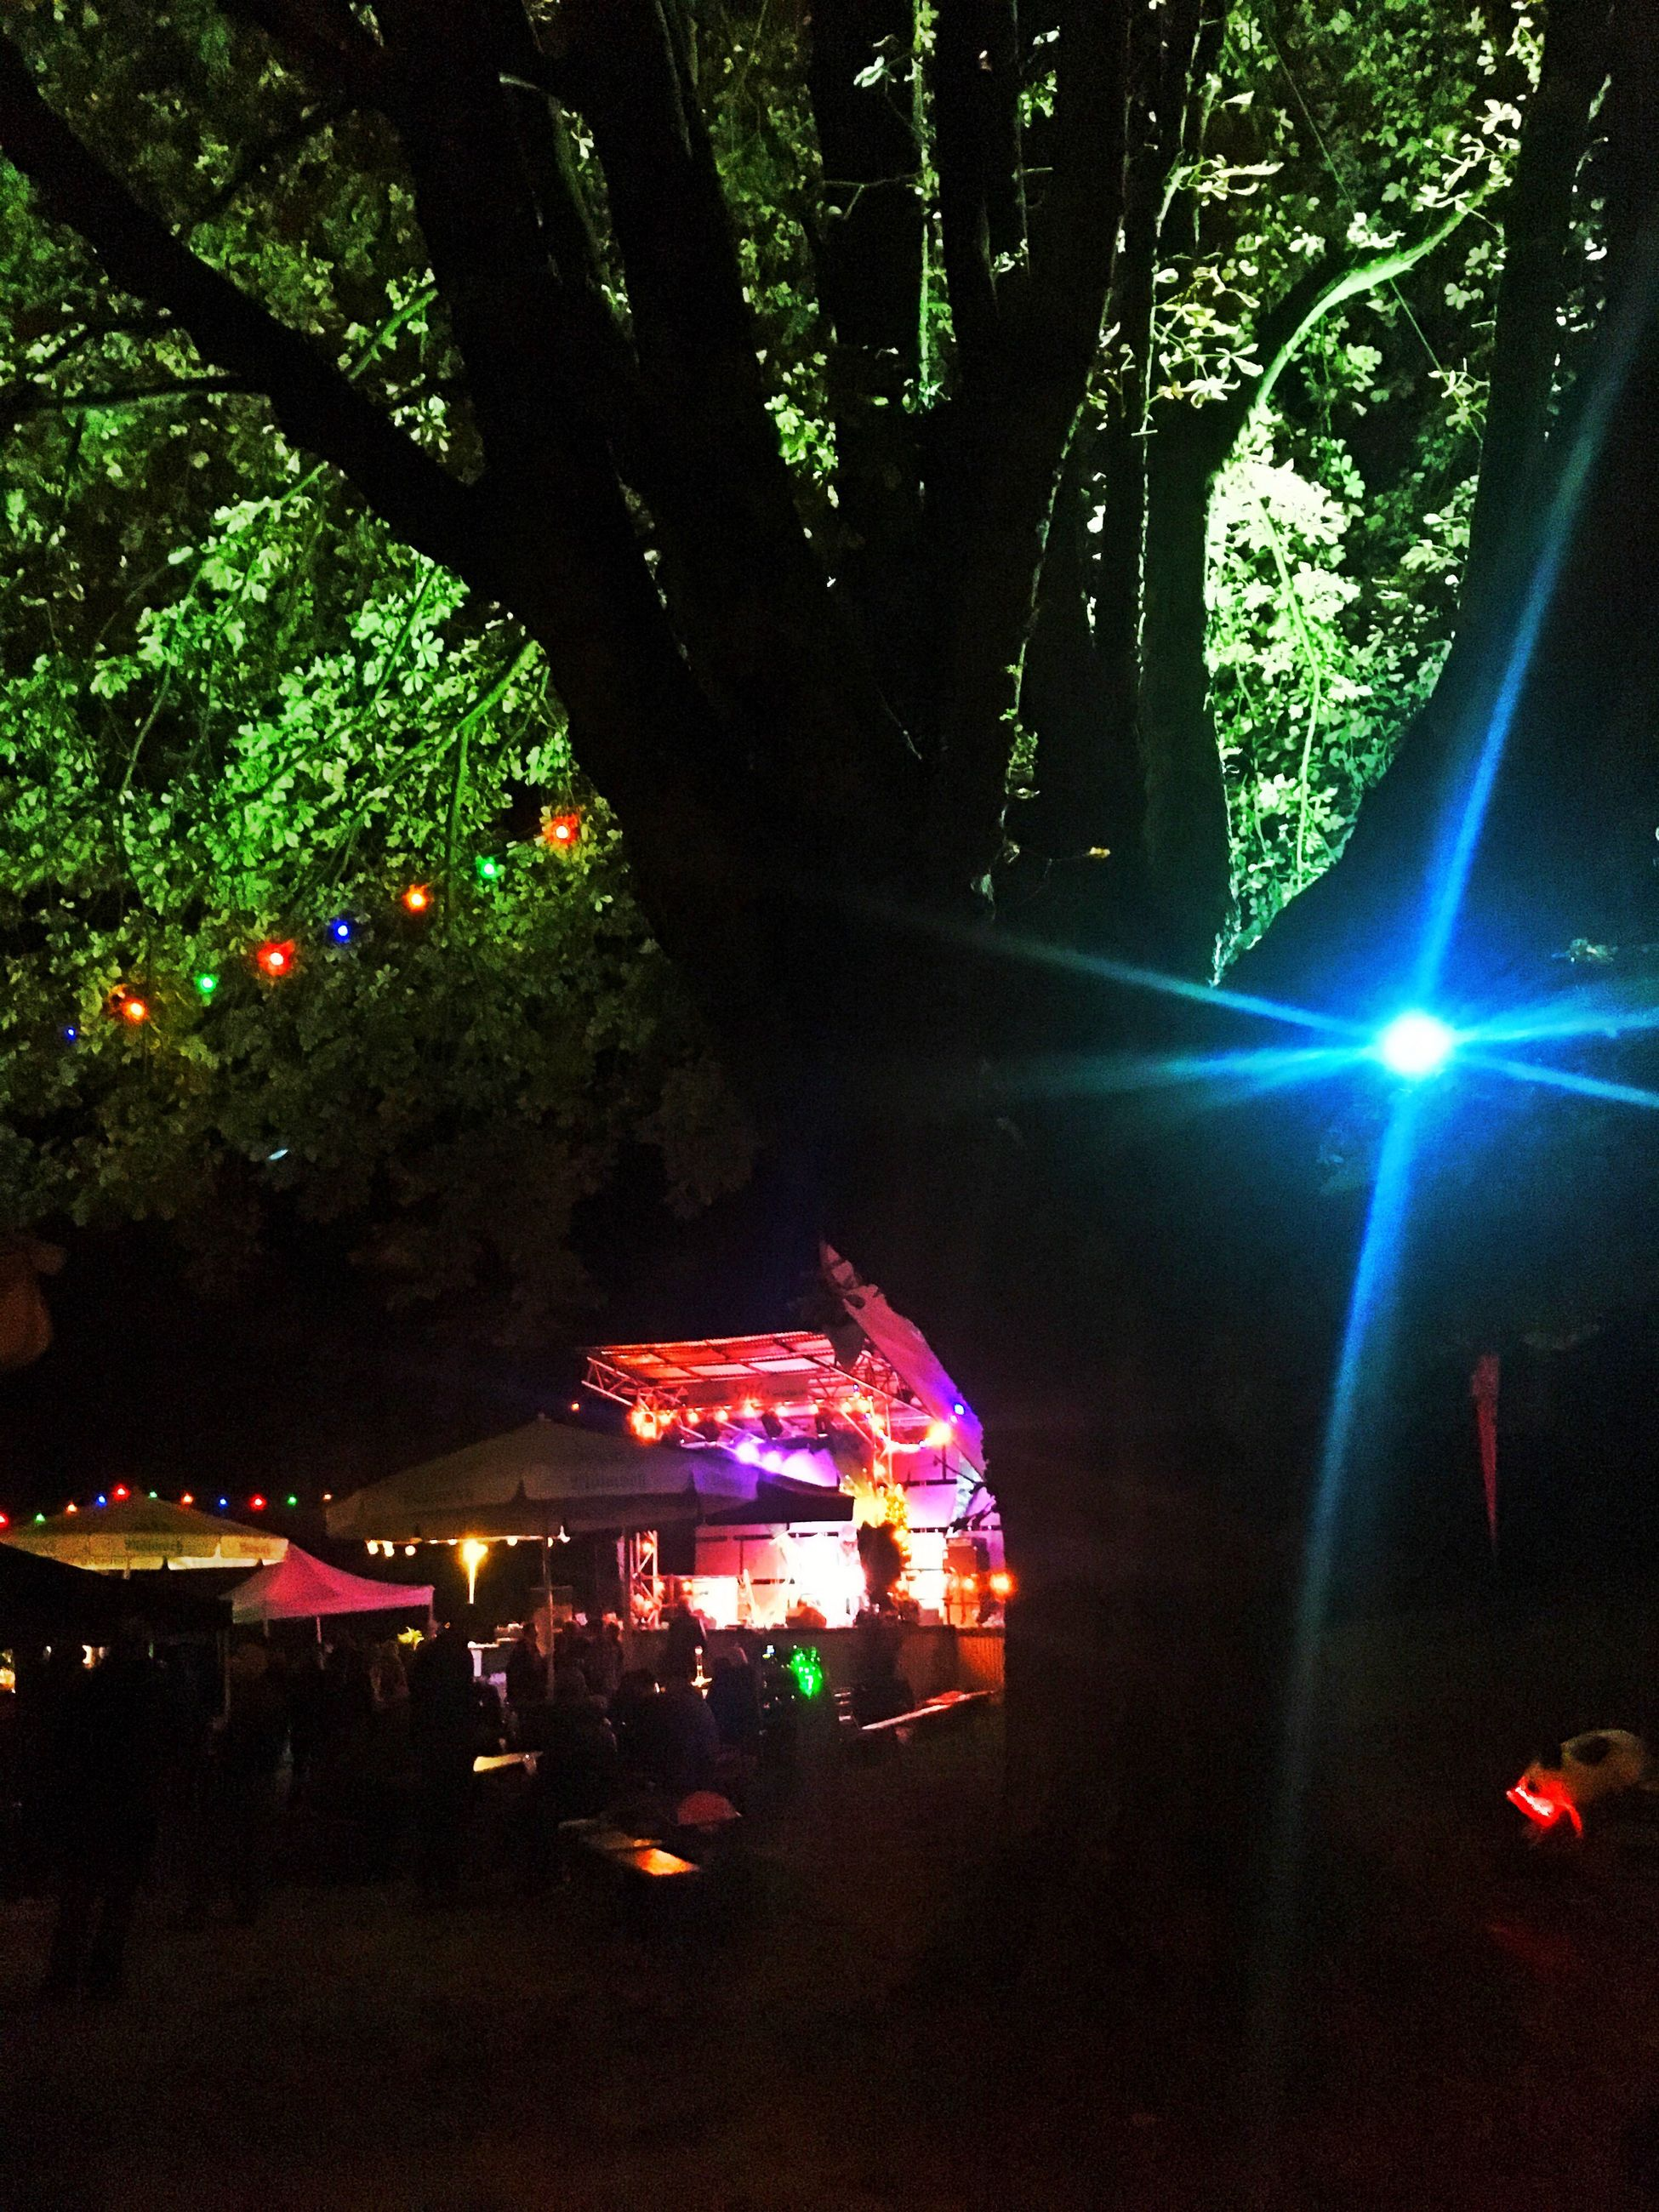 illuminated, tree, lighting equipment, night, tree trunk, decoration, growth, branch, lens flare, green color, nightlife, light beam, tranquility, vacations, electric light, outdoors, fairy lights, tranquil scene, amusement park, multi colored